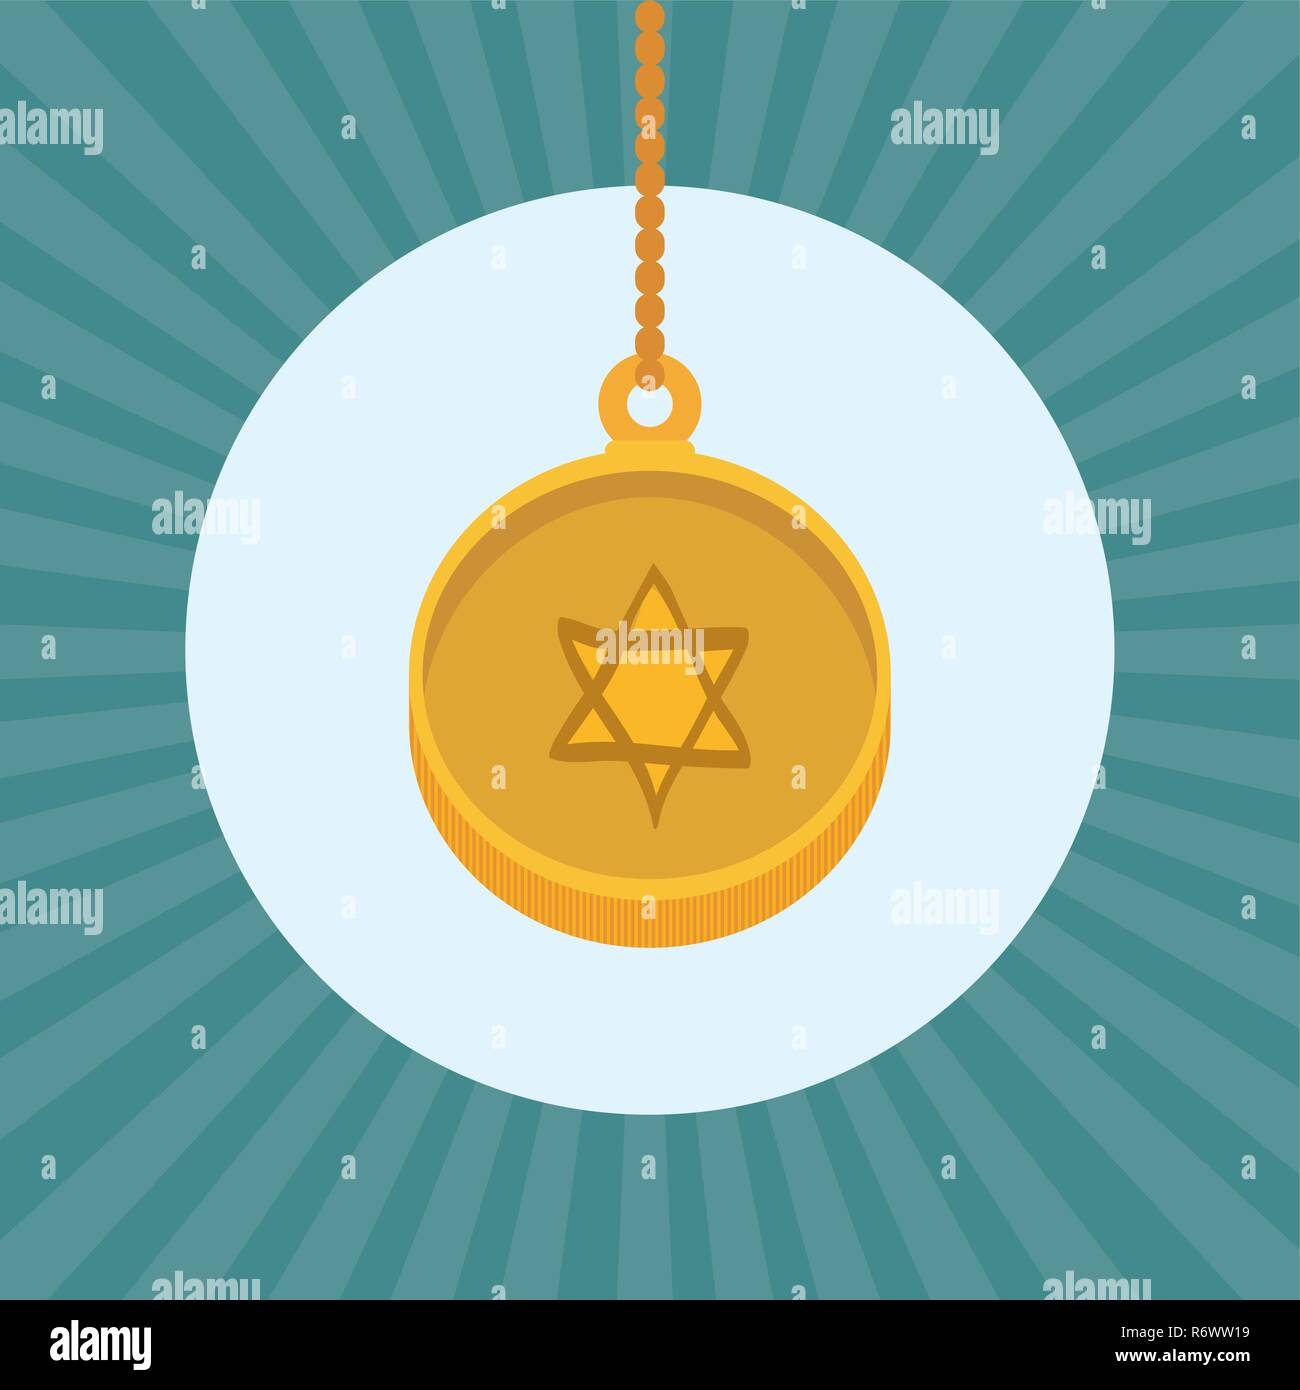 happy hanukkah card with medal vector illustration design - Stock Image